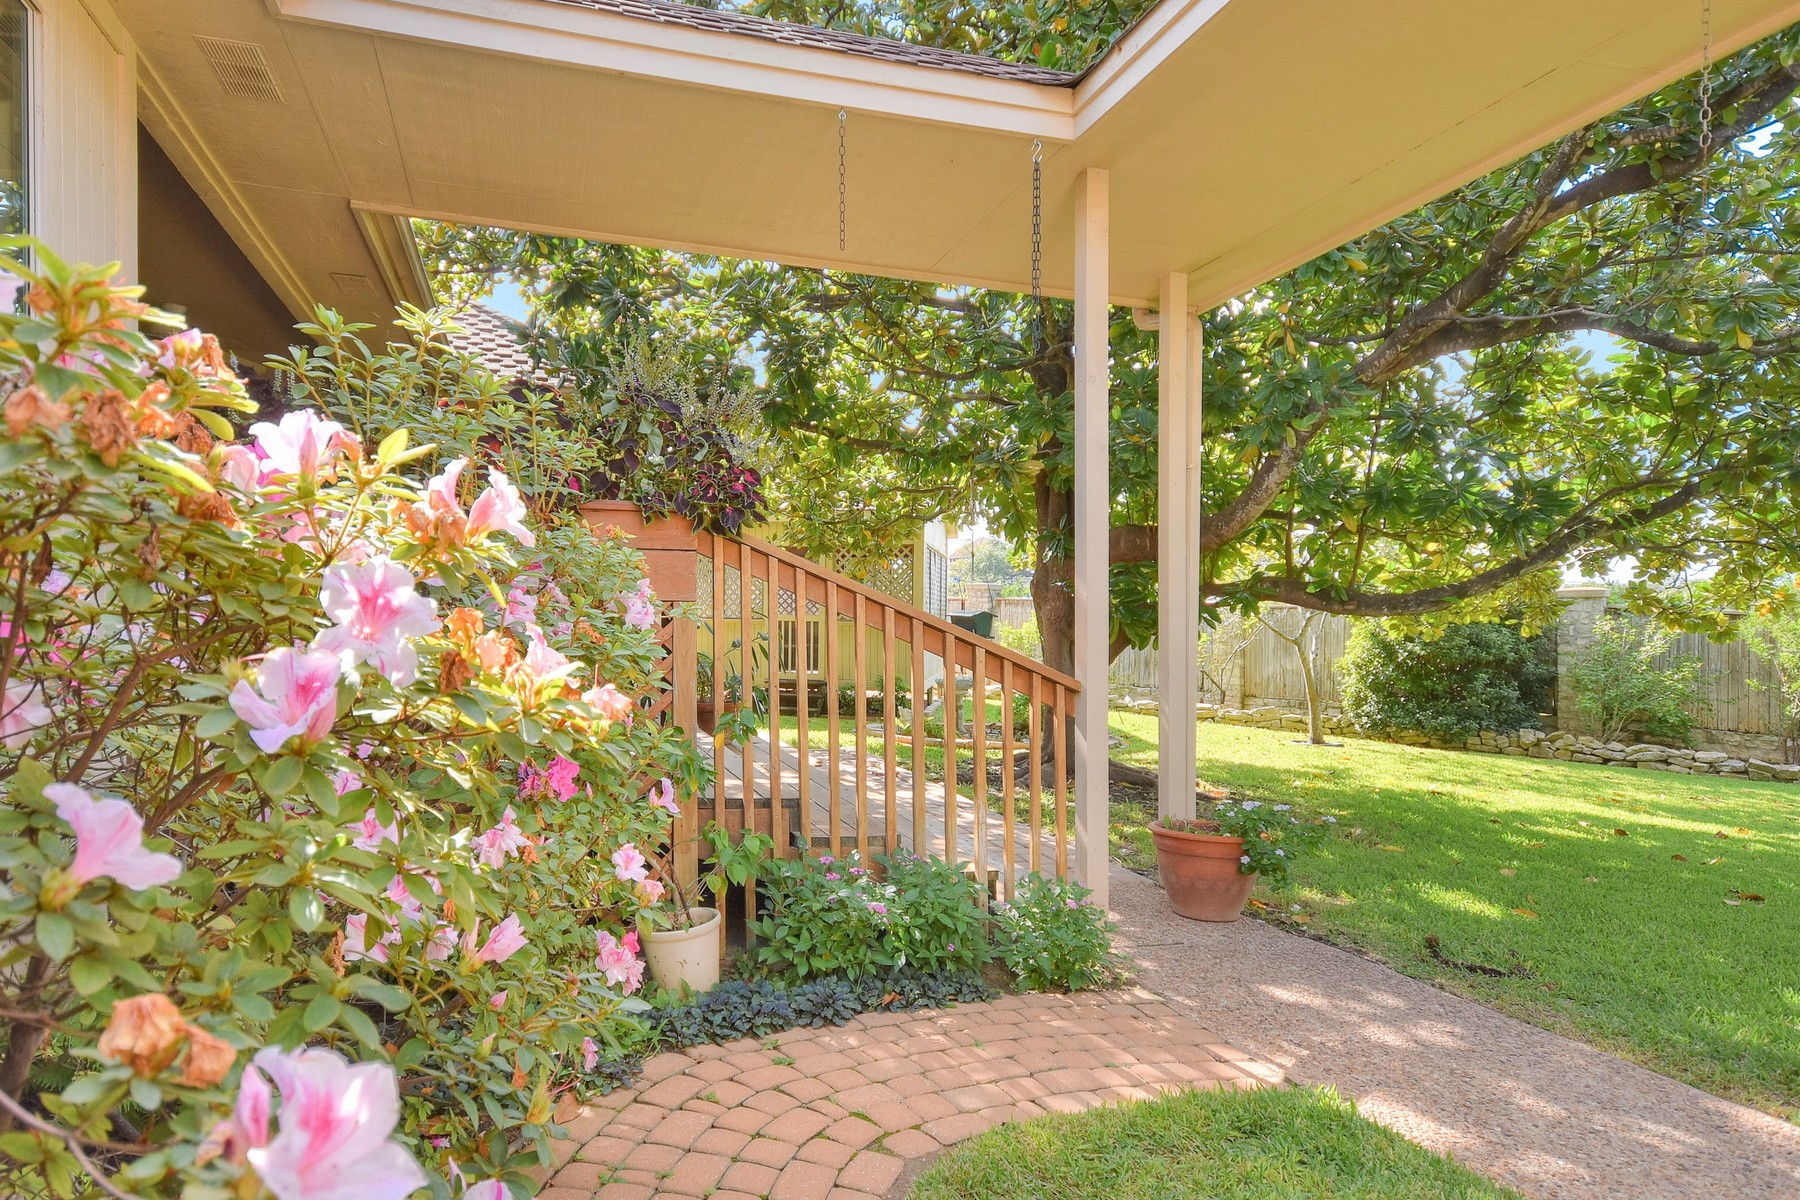 Additional photo for property listing at Wonderful Home on Davenport Cul-de-sac 6106 Nashua Ct Austin, Texas 78746 United States